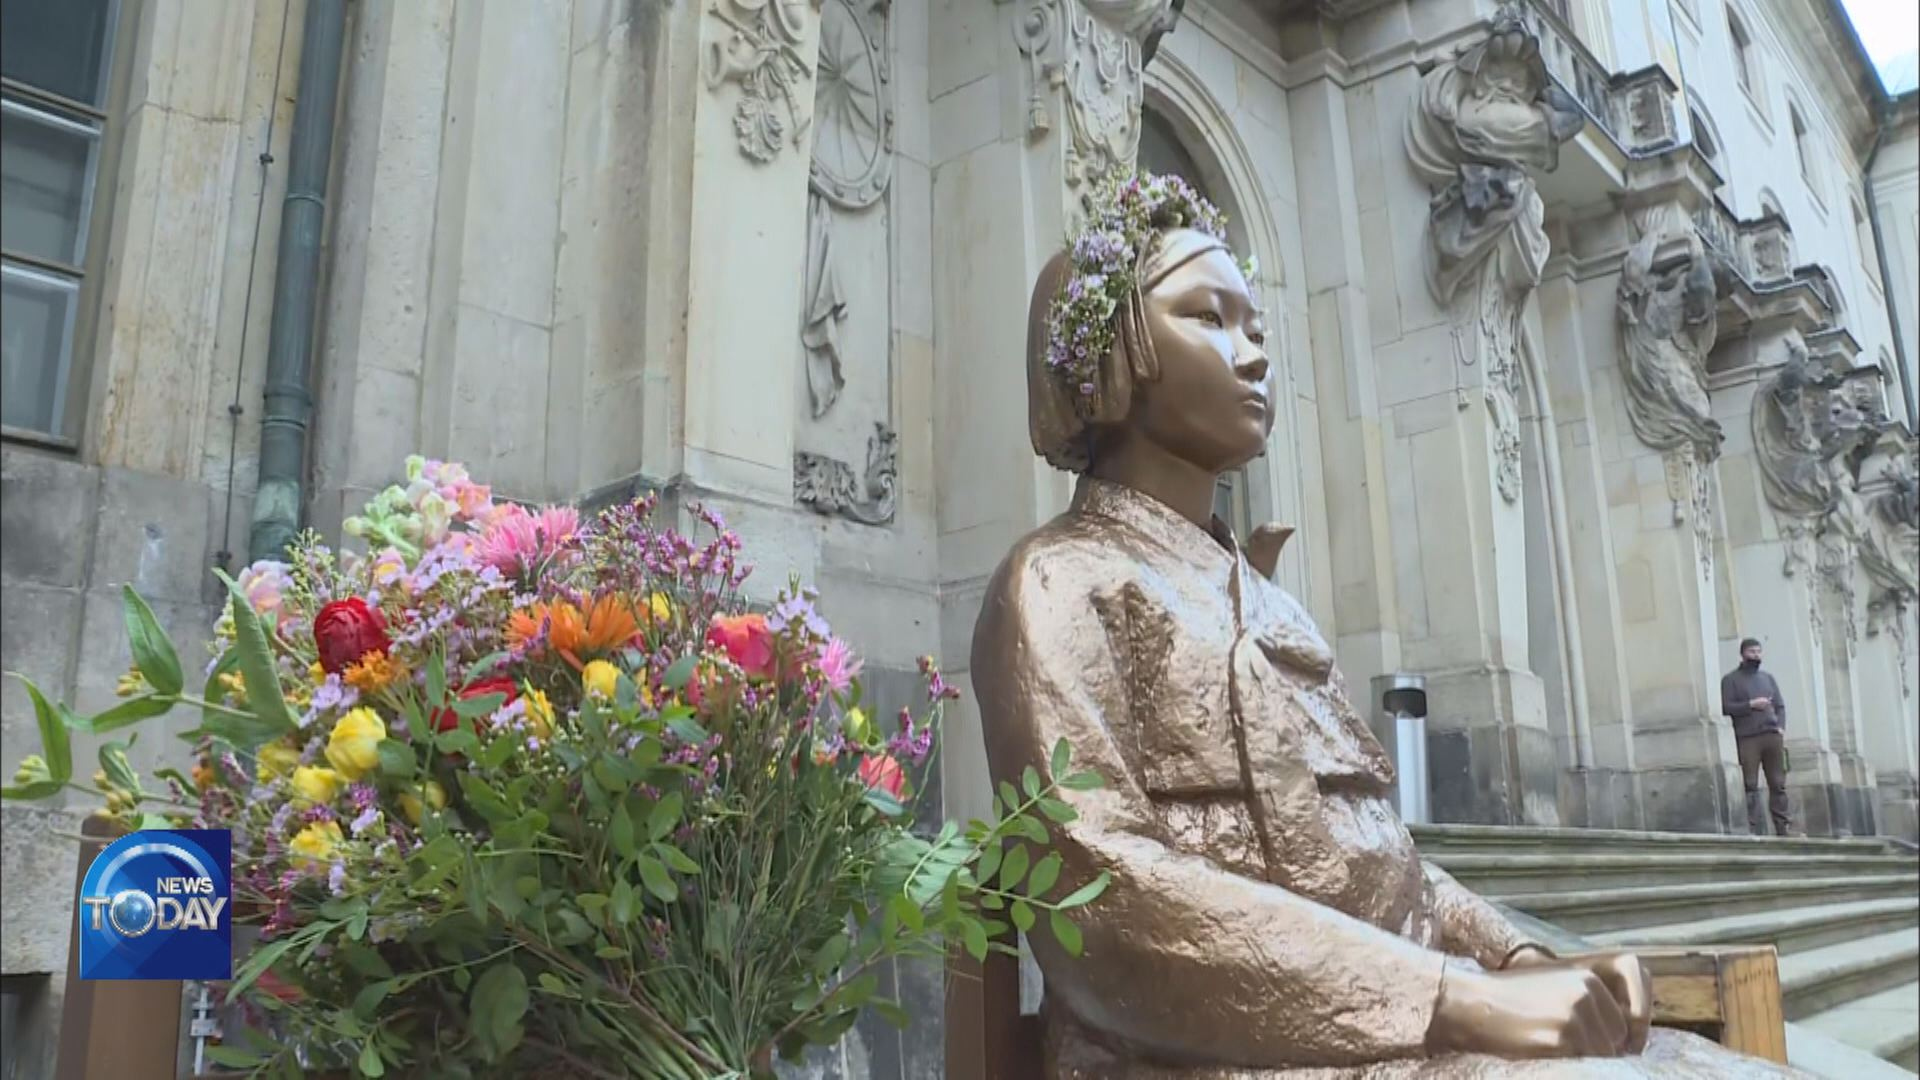 STATUE OF PEACE PLACED AT GERMAN MUSEUM